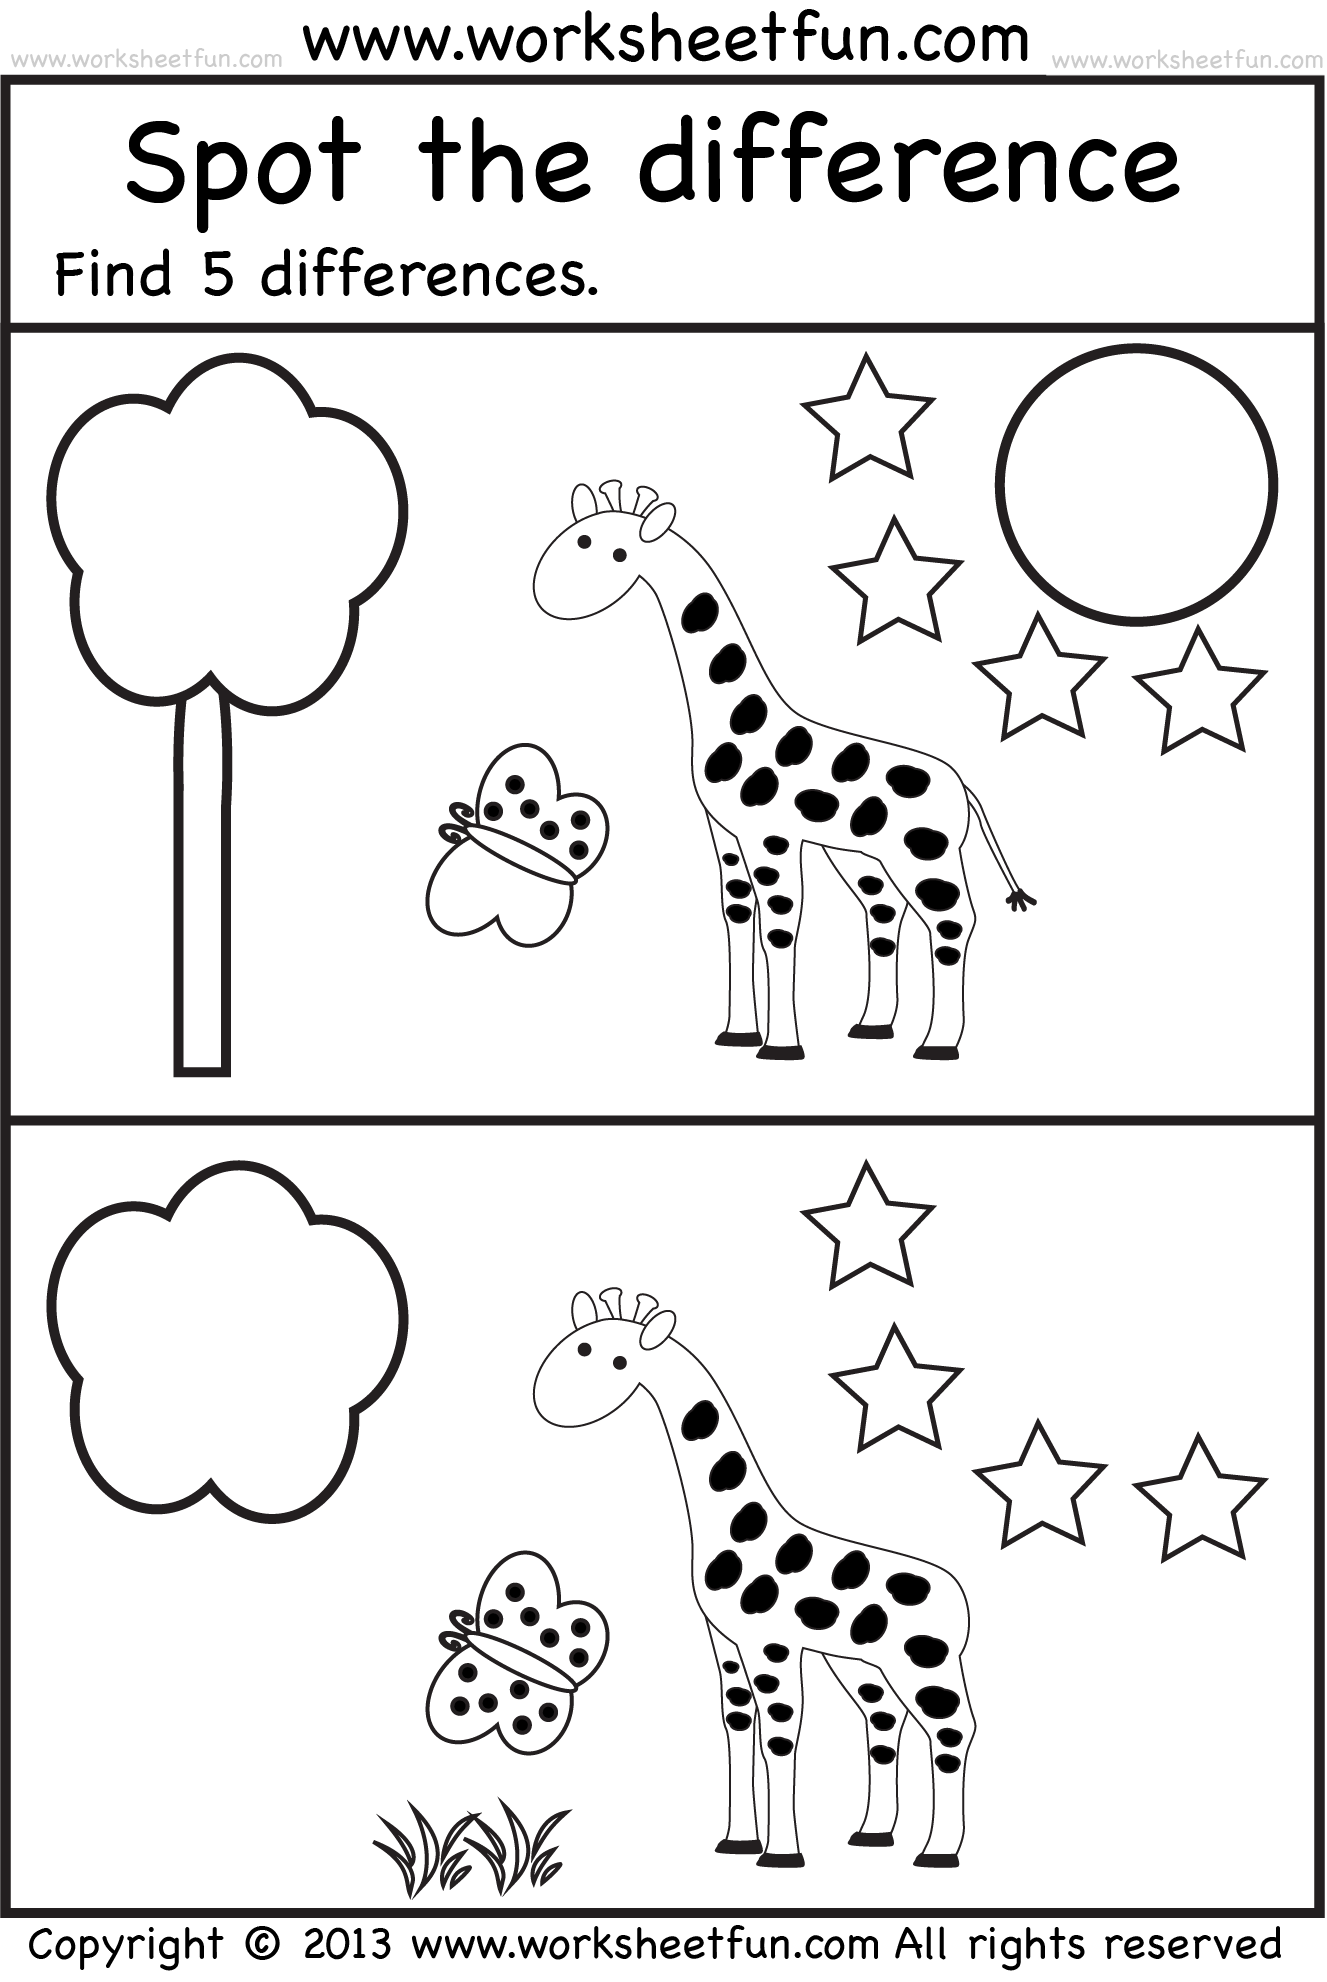 spot the difference – Spot the Difference Worksheets for Kindergarten